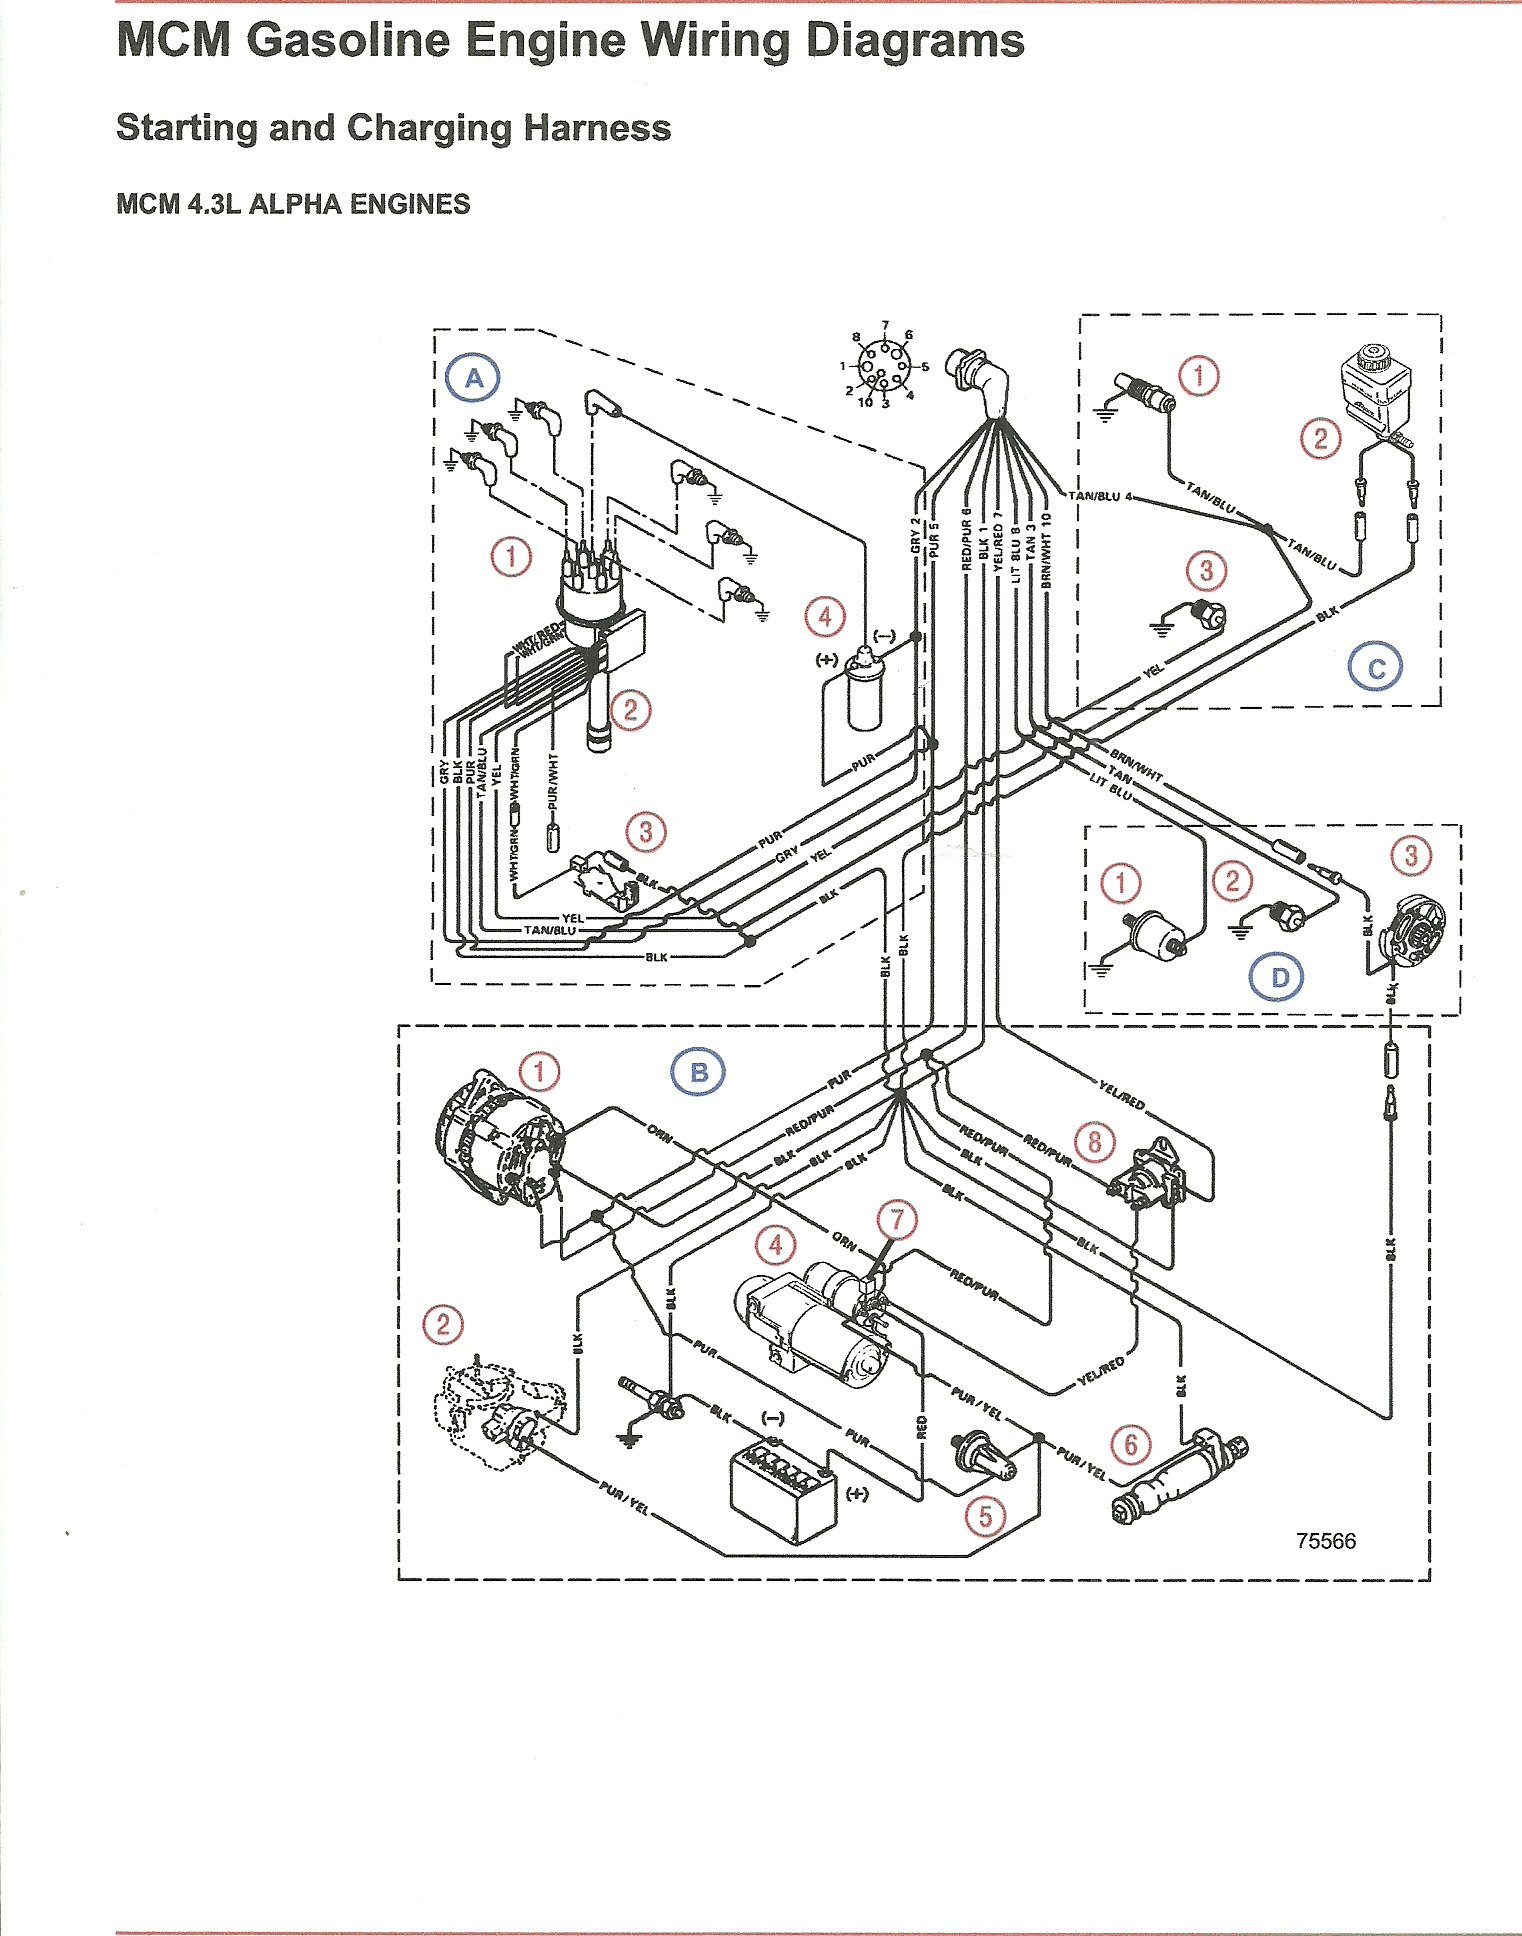 Having A Hard Time Finding The Wiring Diagram For The